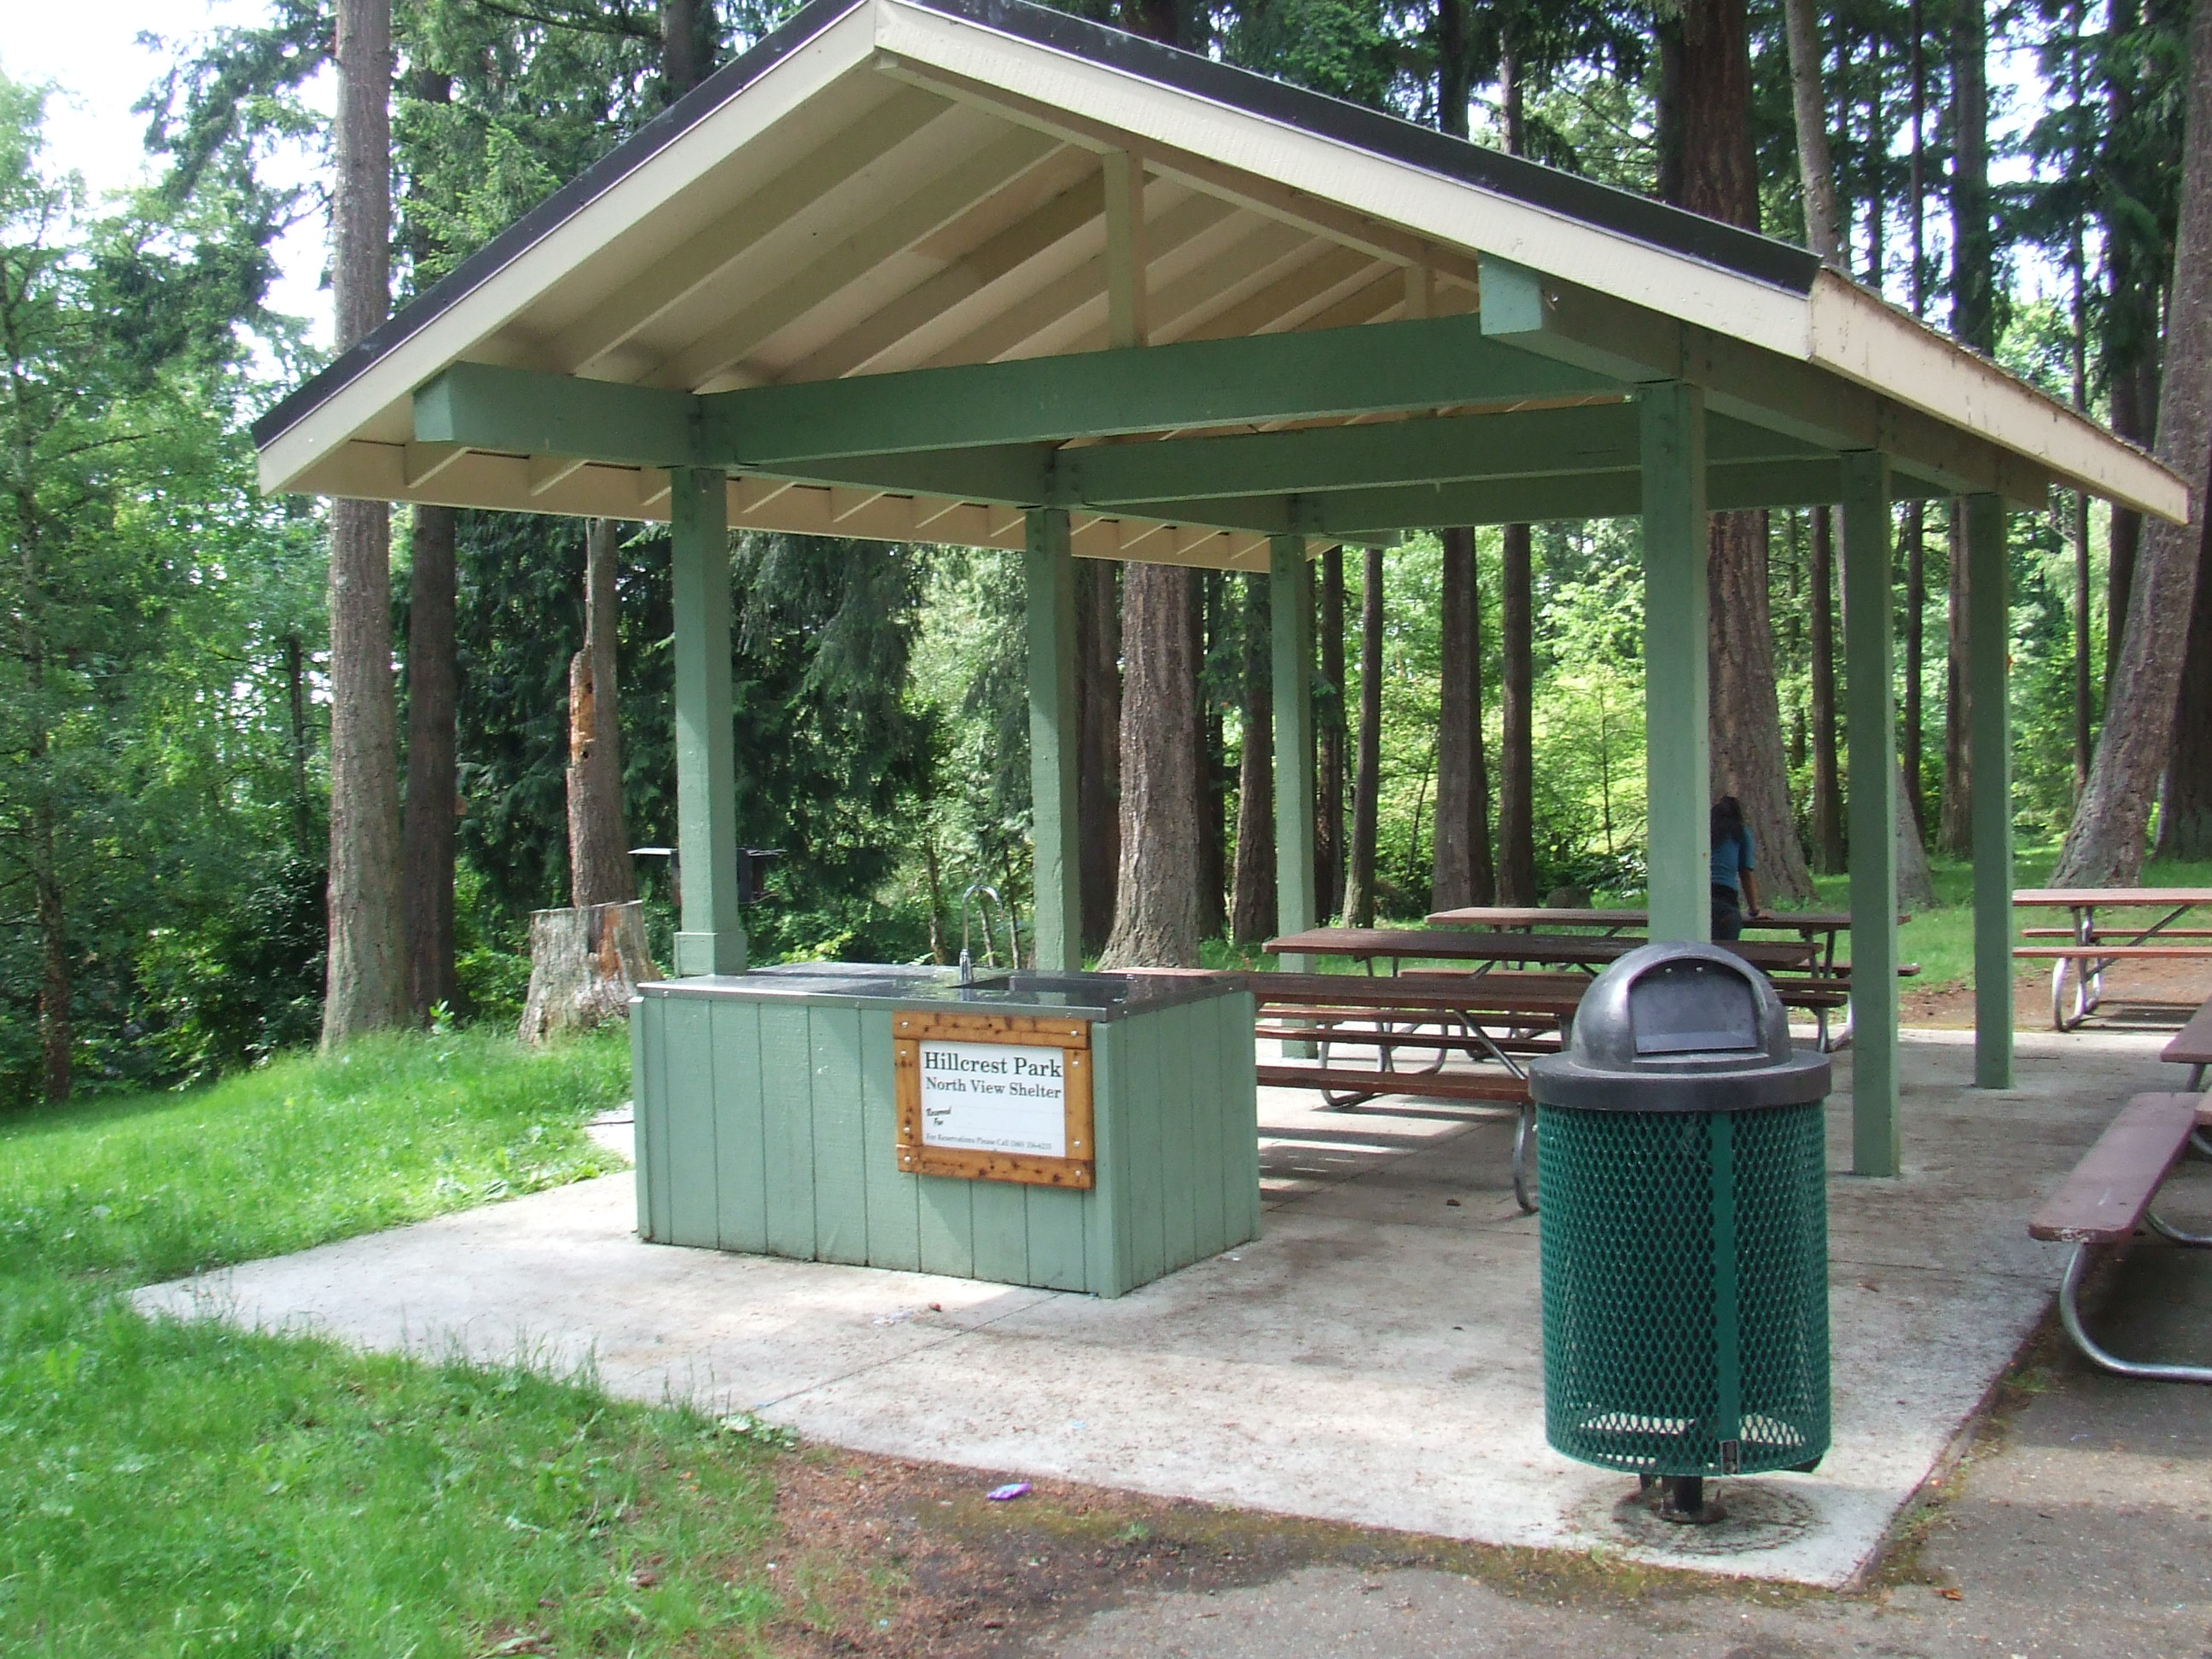 North View Shelter at Hillcrest Park